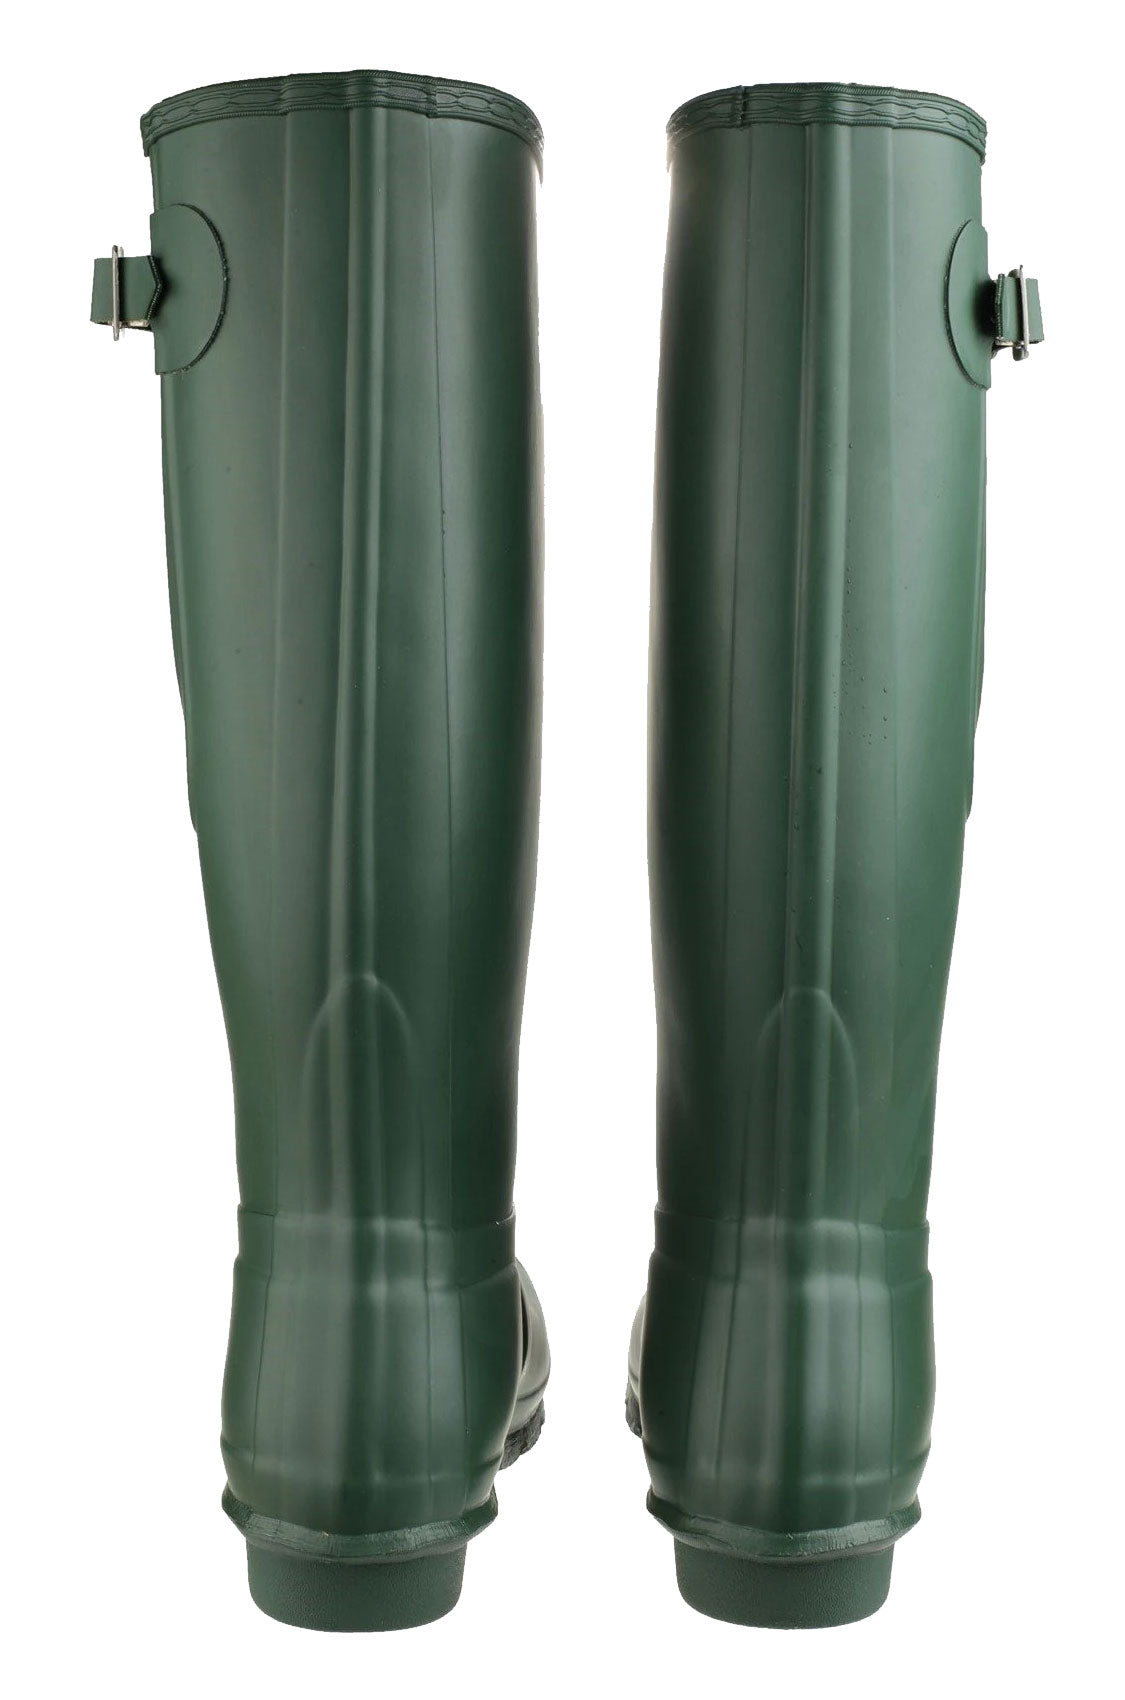 Back view Green Cotswold Windsor Regular Fitting Premium Quality Unisex Wellingtons